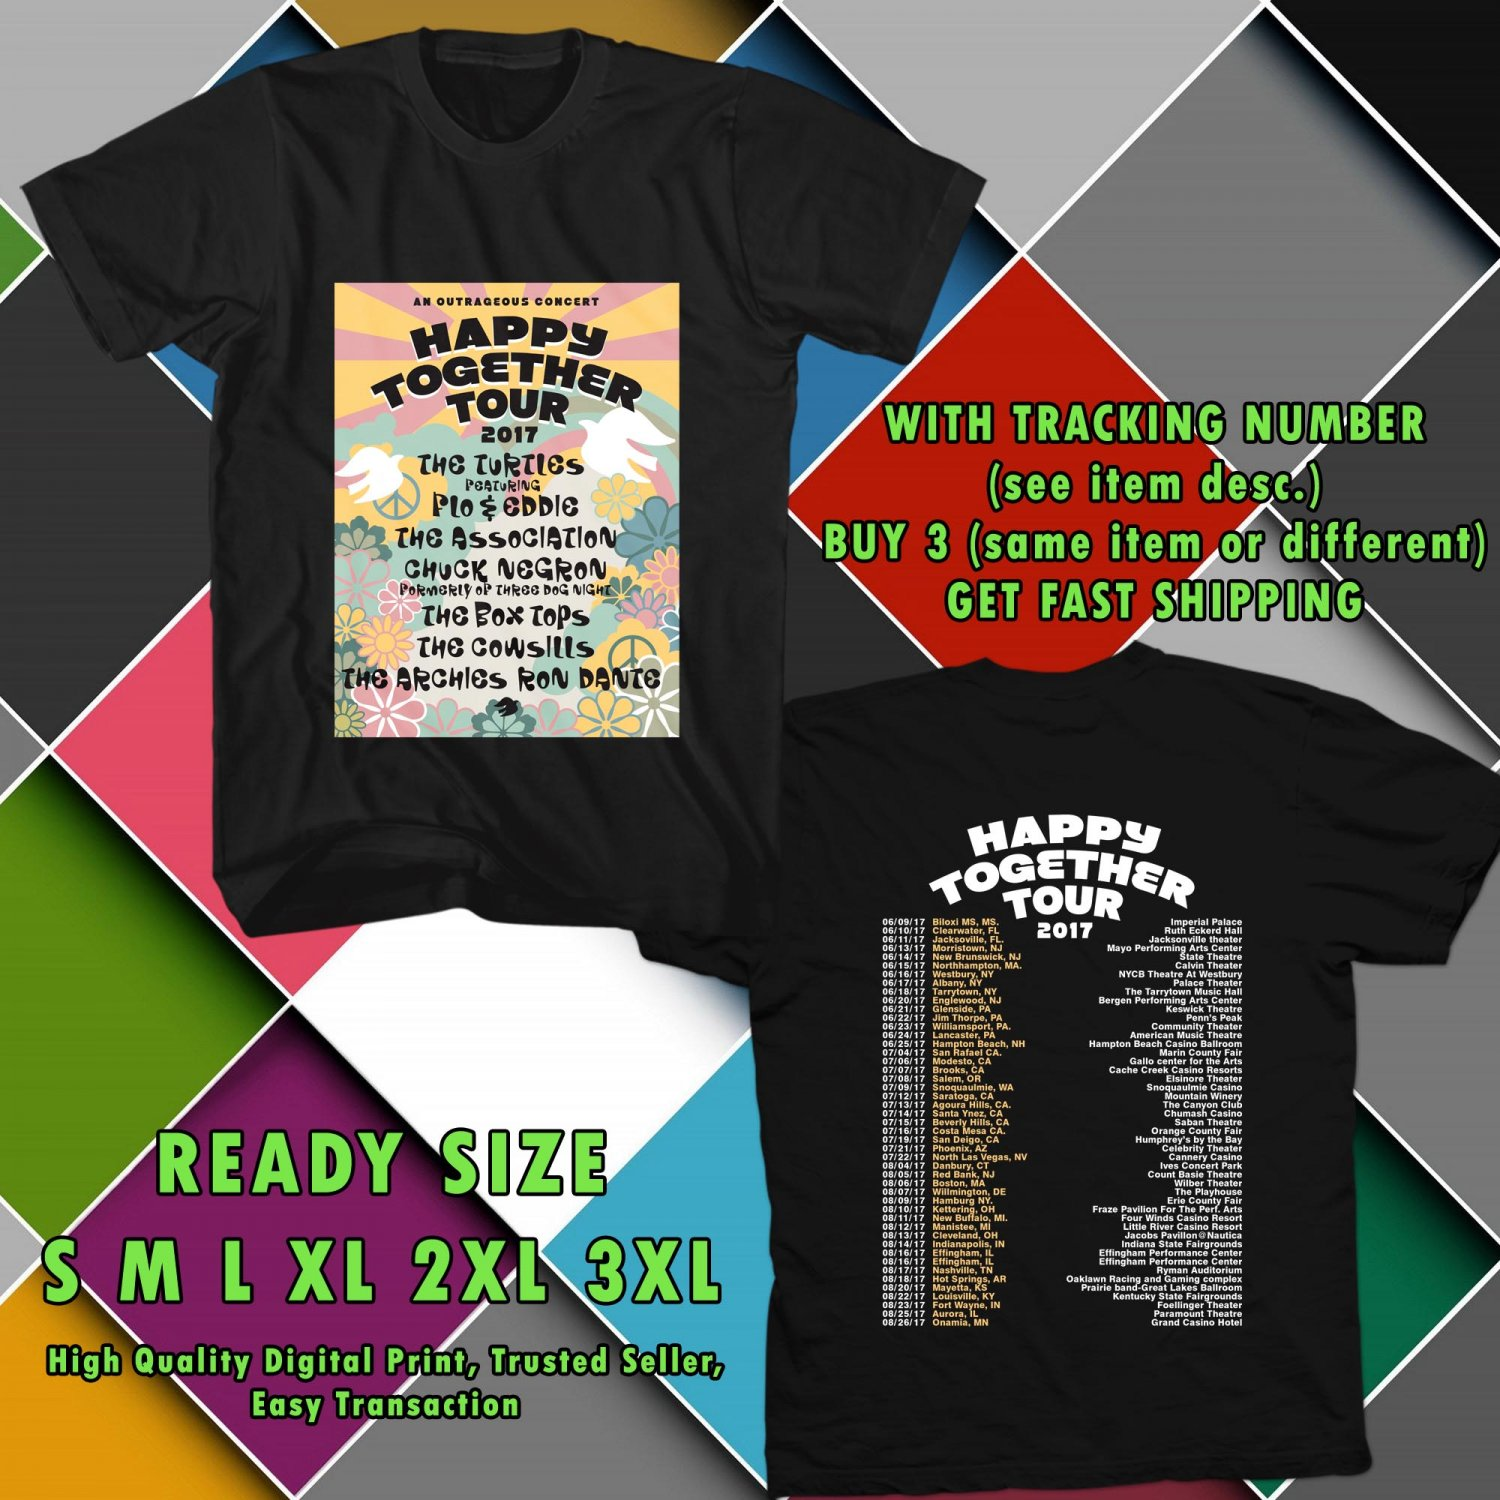 HITS HAPPY TOGETHER TOUR 2017 BLACK TEE'S 2SIDE MAN WOMEN ASTR